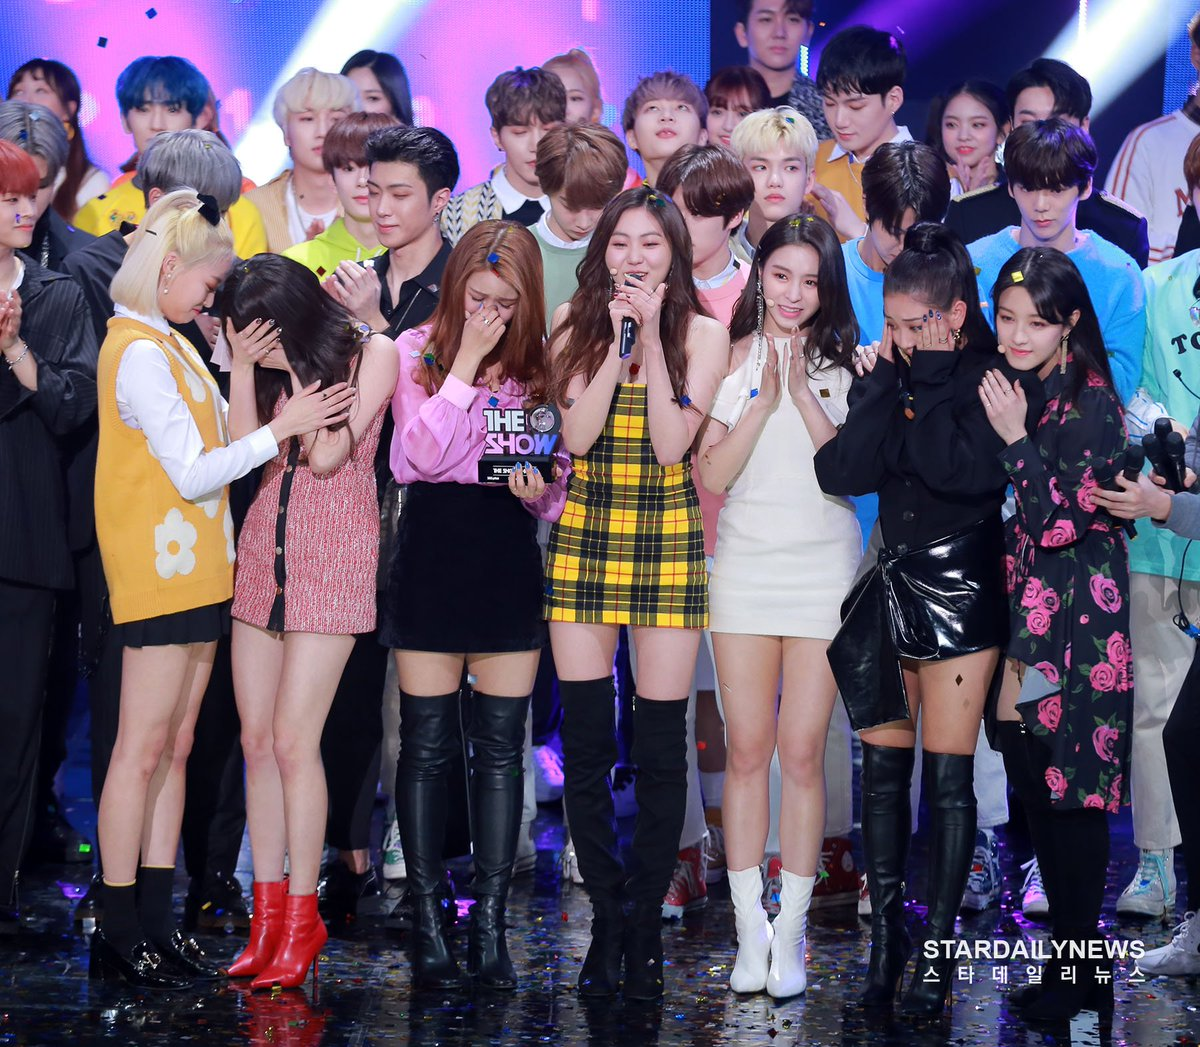 IN MY AREA♡'s photo on #clc1stwin